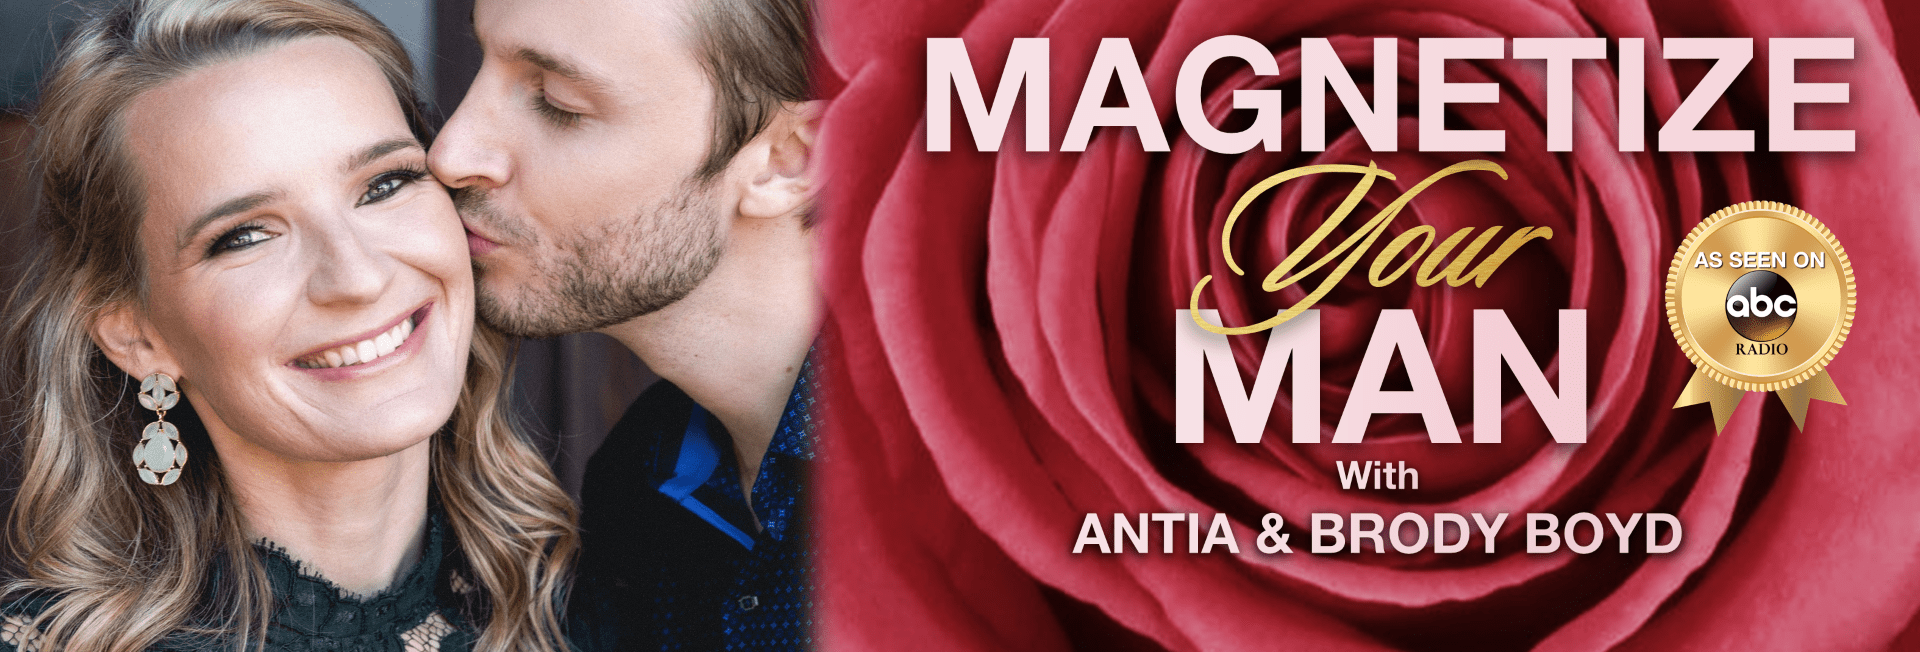 Website Banner 6 Large - Magnetize Your Man With Antia & Brody Boyd!